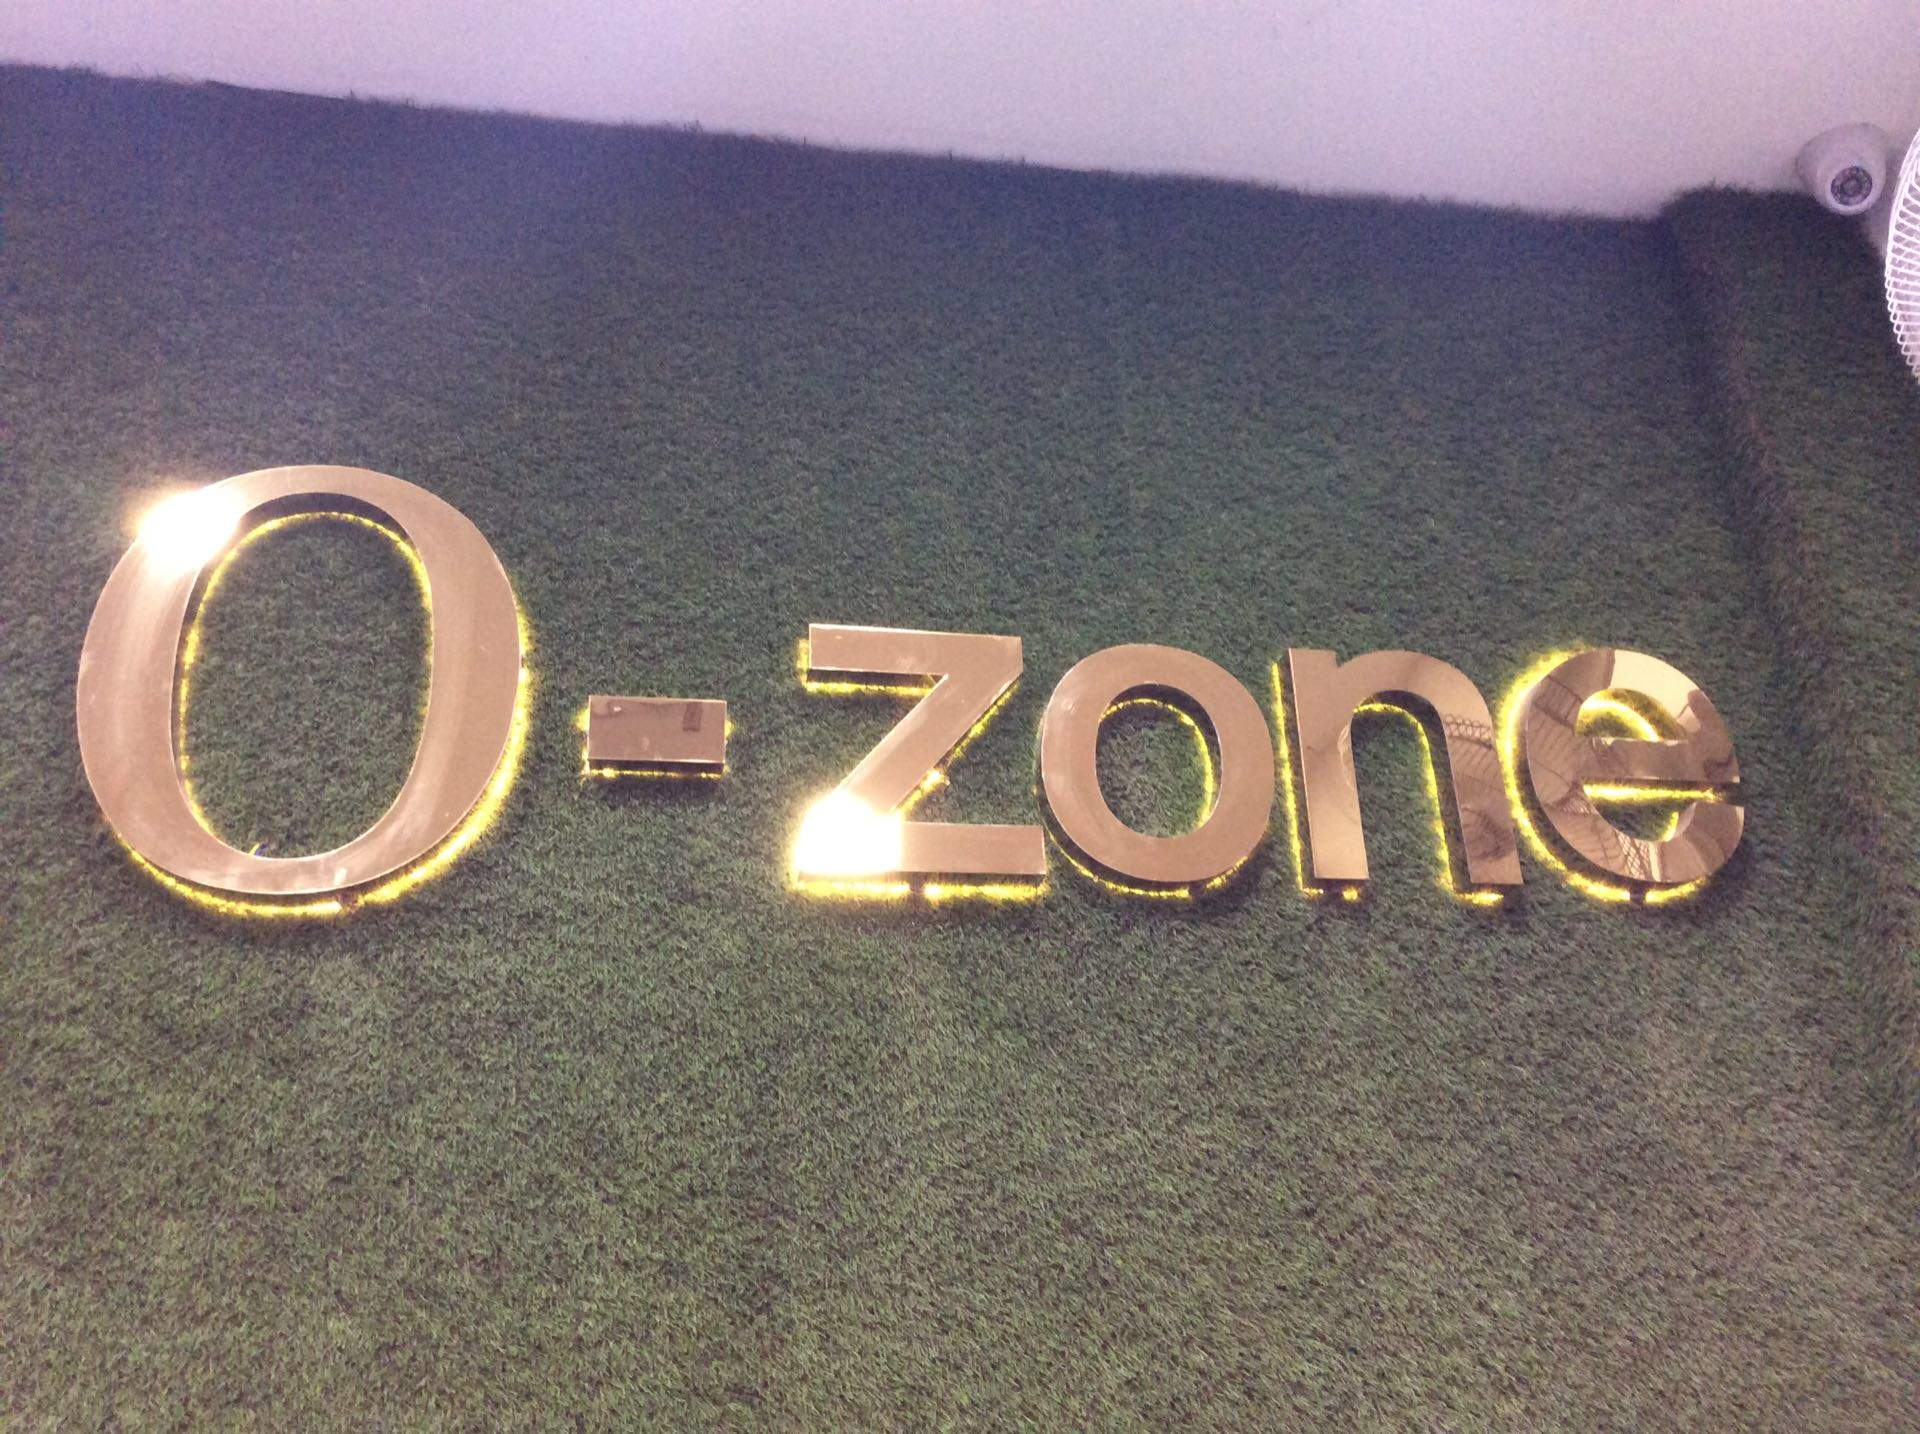 O-Zone (The Fitness World) - Lawrence Road - Amritsar Image